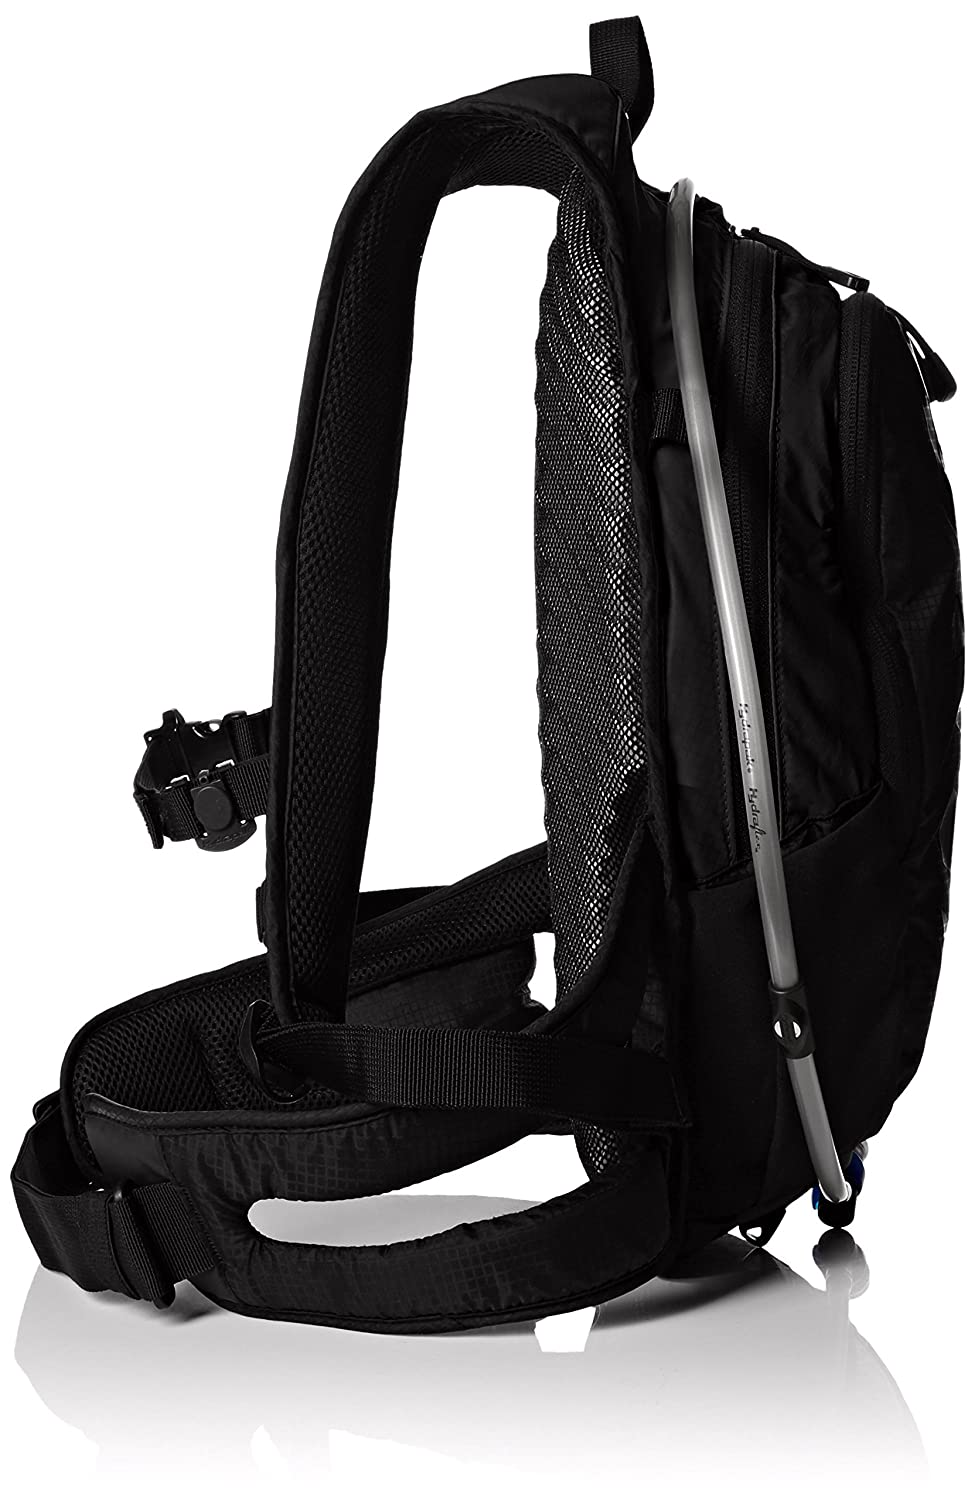 4821d41222c1 Amazon.com : Fox Racing Camber Race 10-15L Backpack : Sports & Outdoors